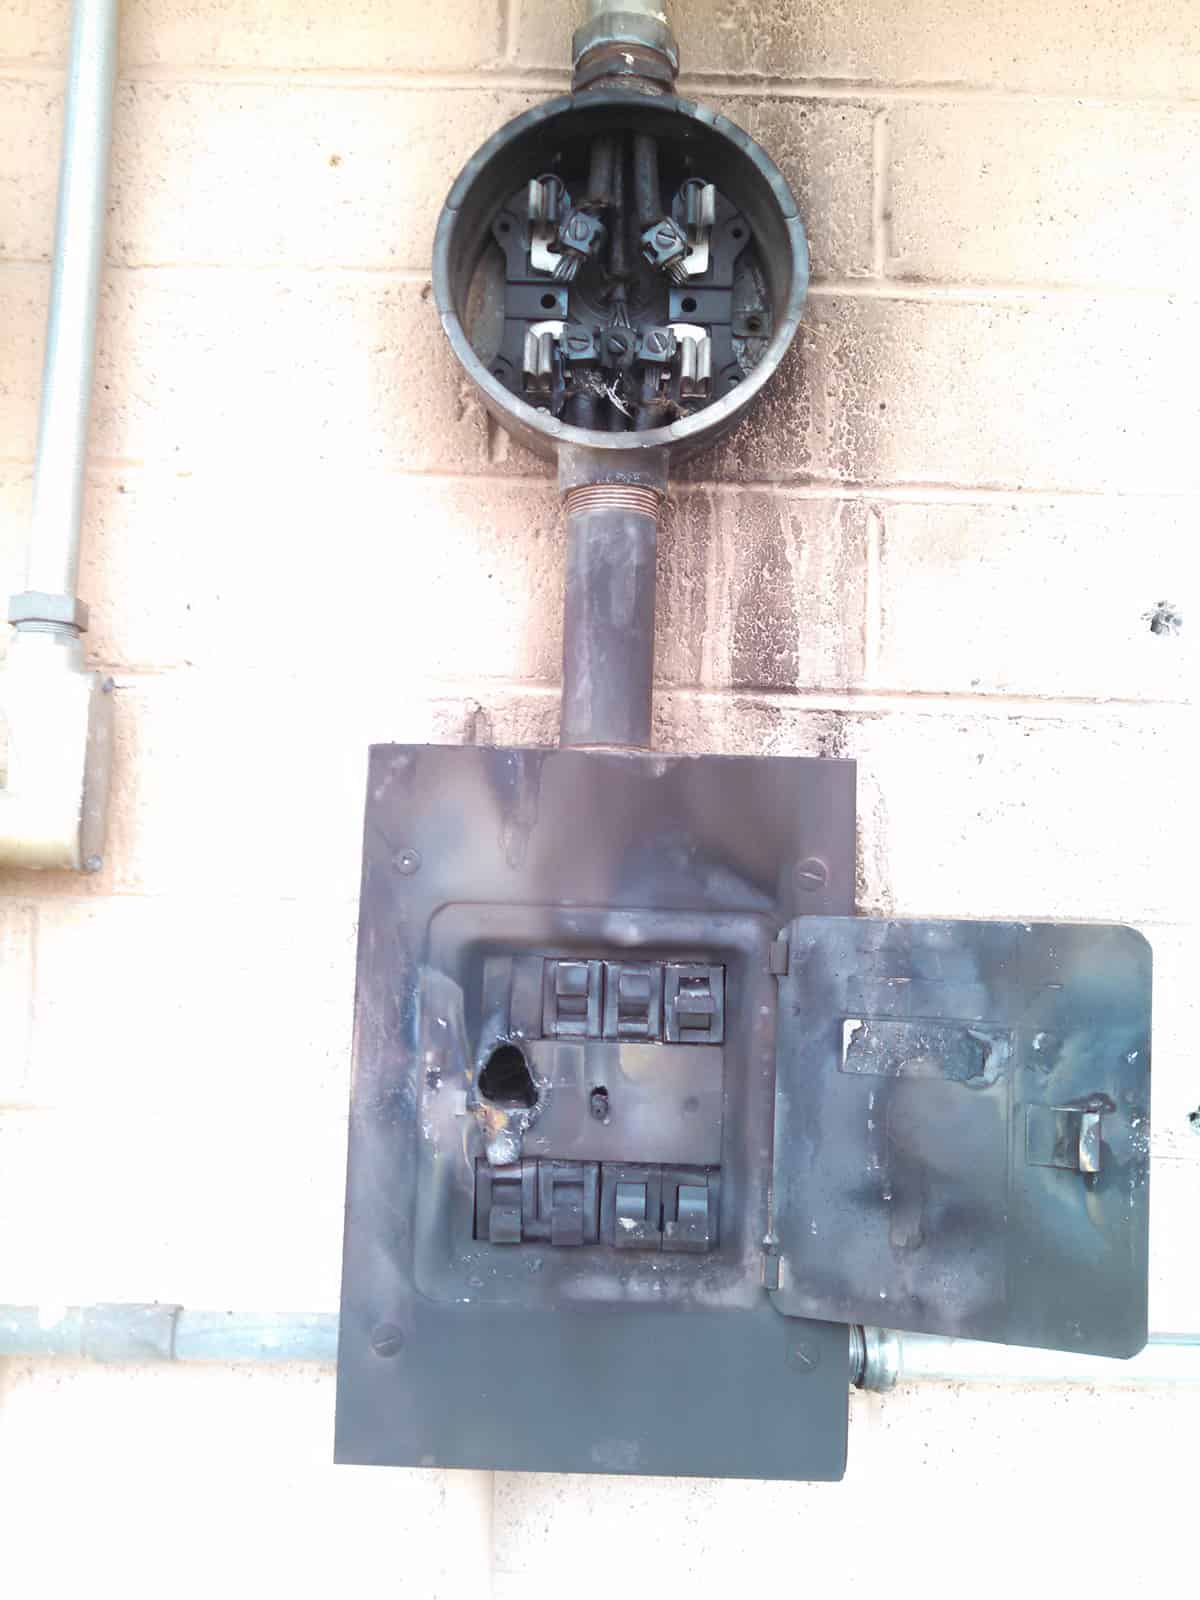 How to turn on circuit breaker